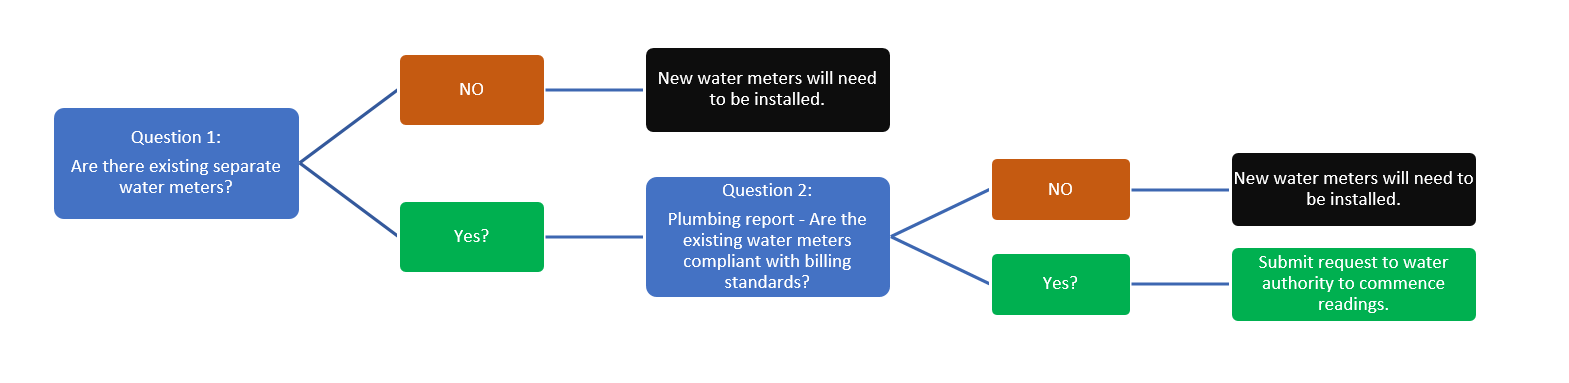 Flowchart: How to upgrade water meters in a body corporate